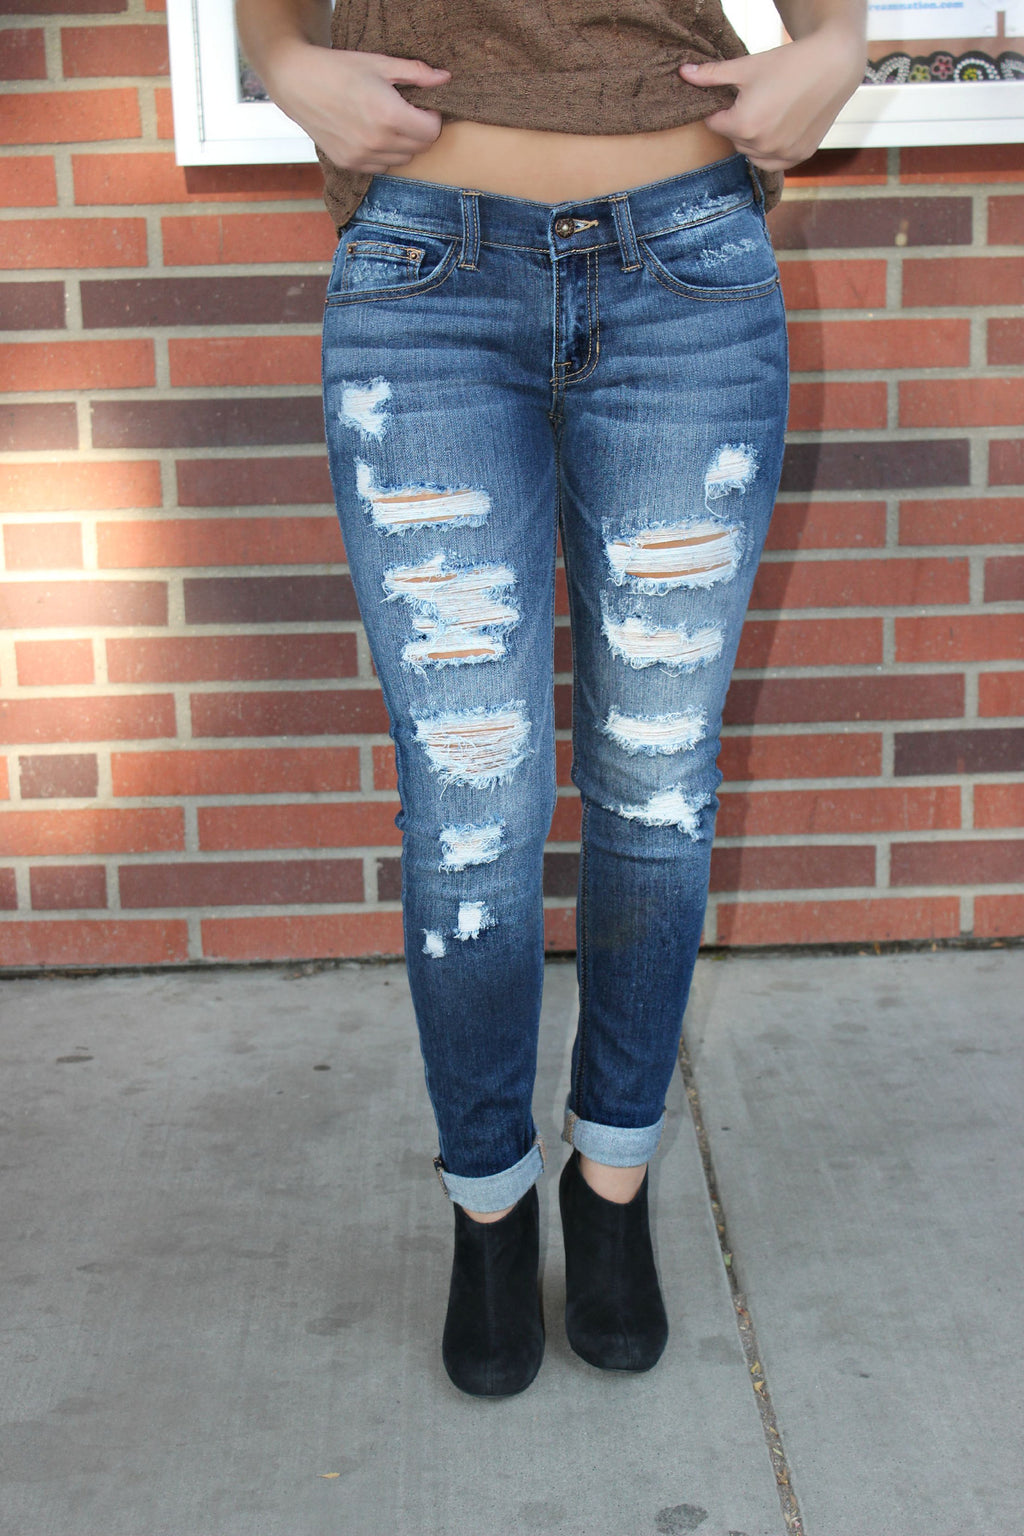 Make Them Talk Denim - Leah B. Boutique